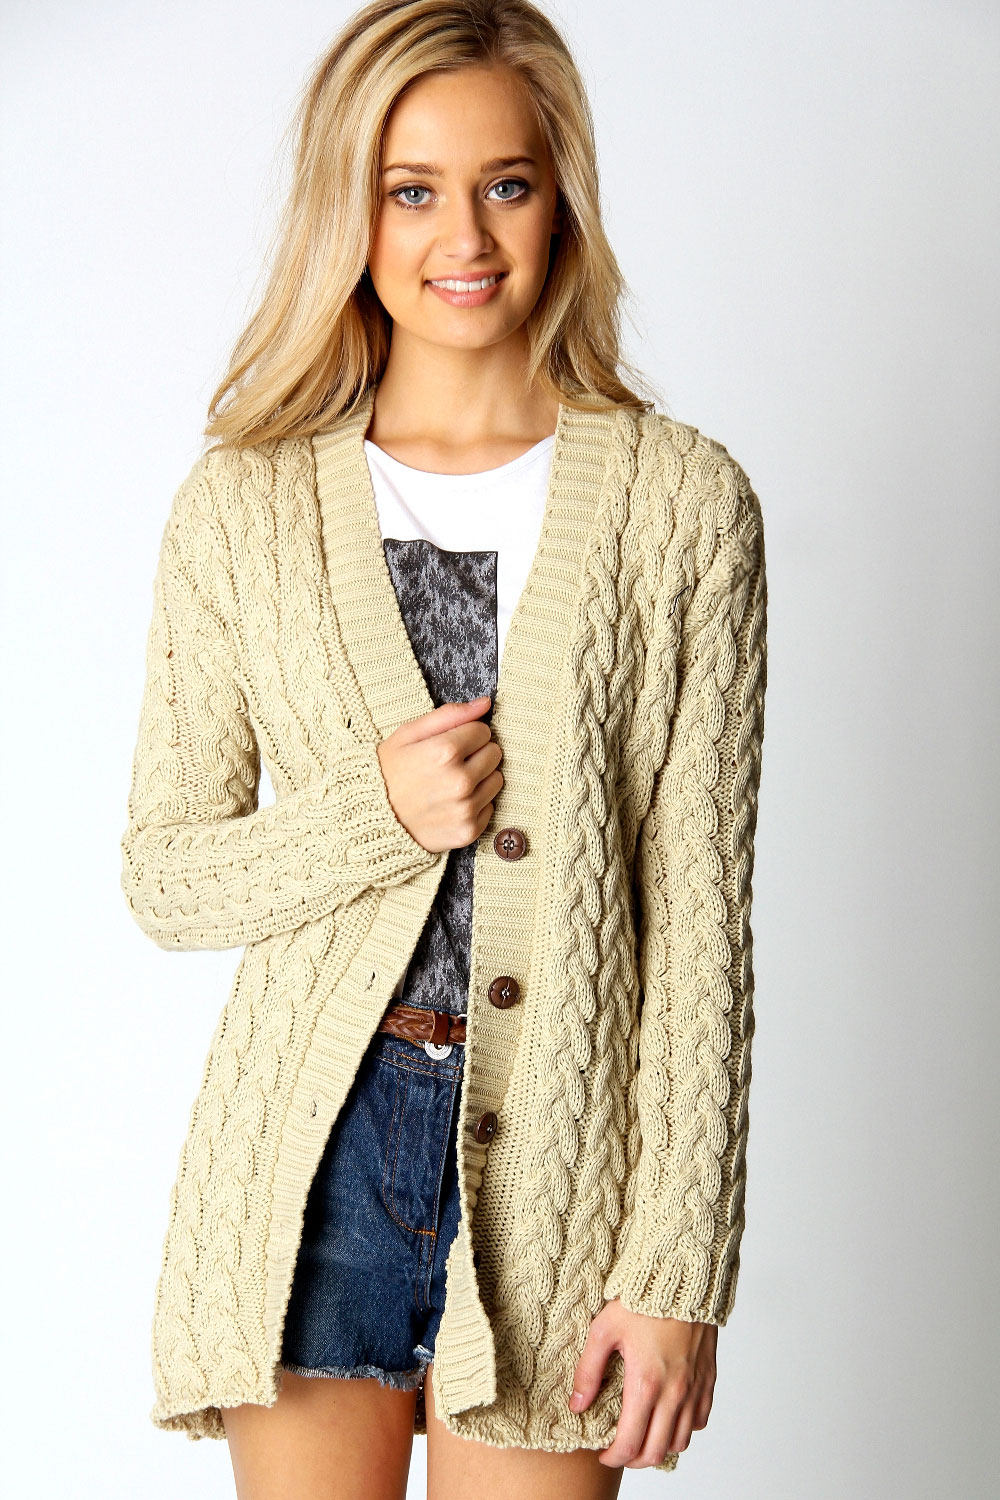 Cardigans. Layer up with one of these delightful cardigan knitting patterns. Whether you need something for the office or a night out, you'll find the perfect pattern here.